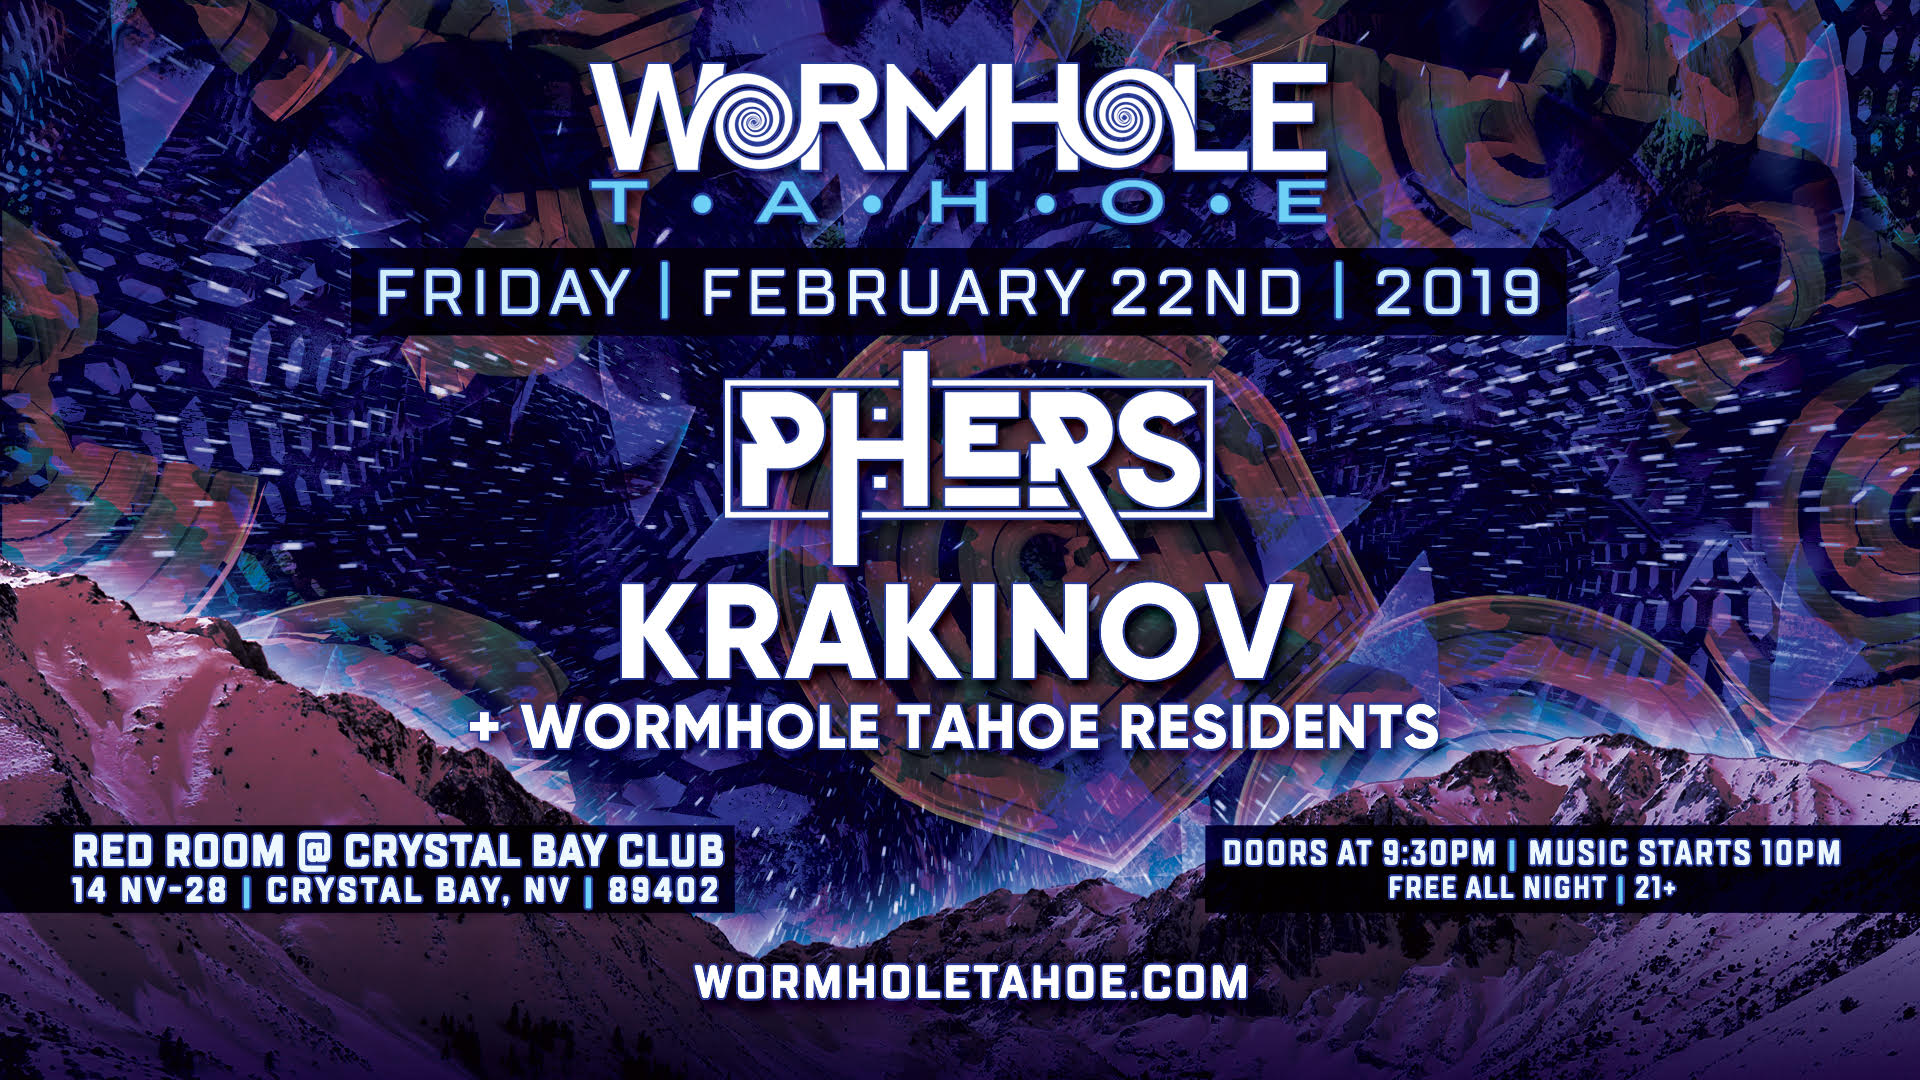 Wormhole Feb 2019